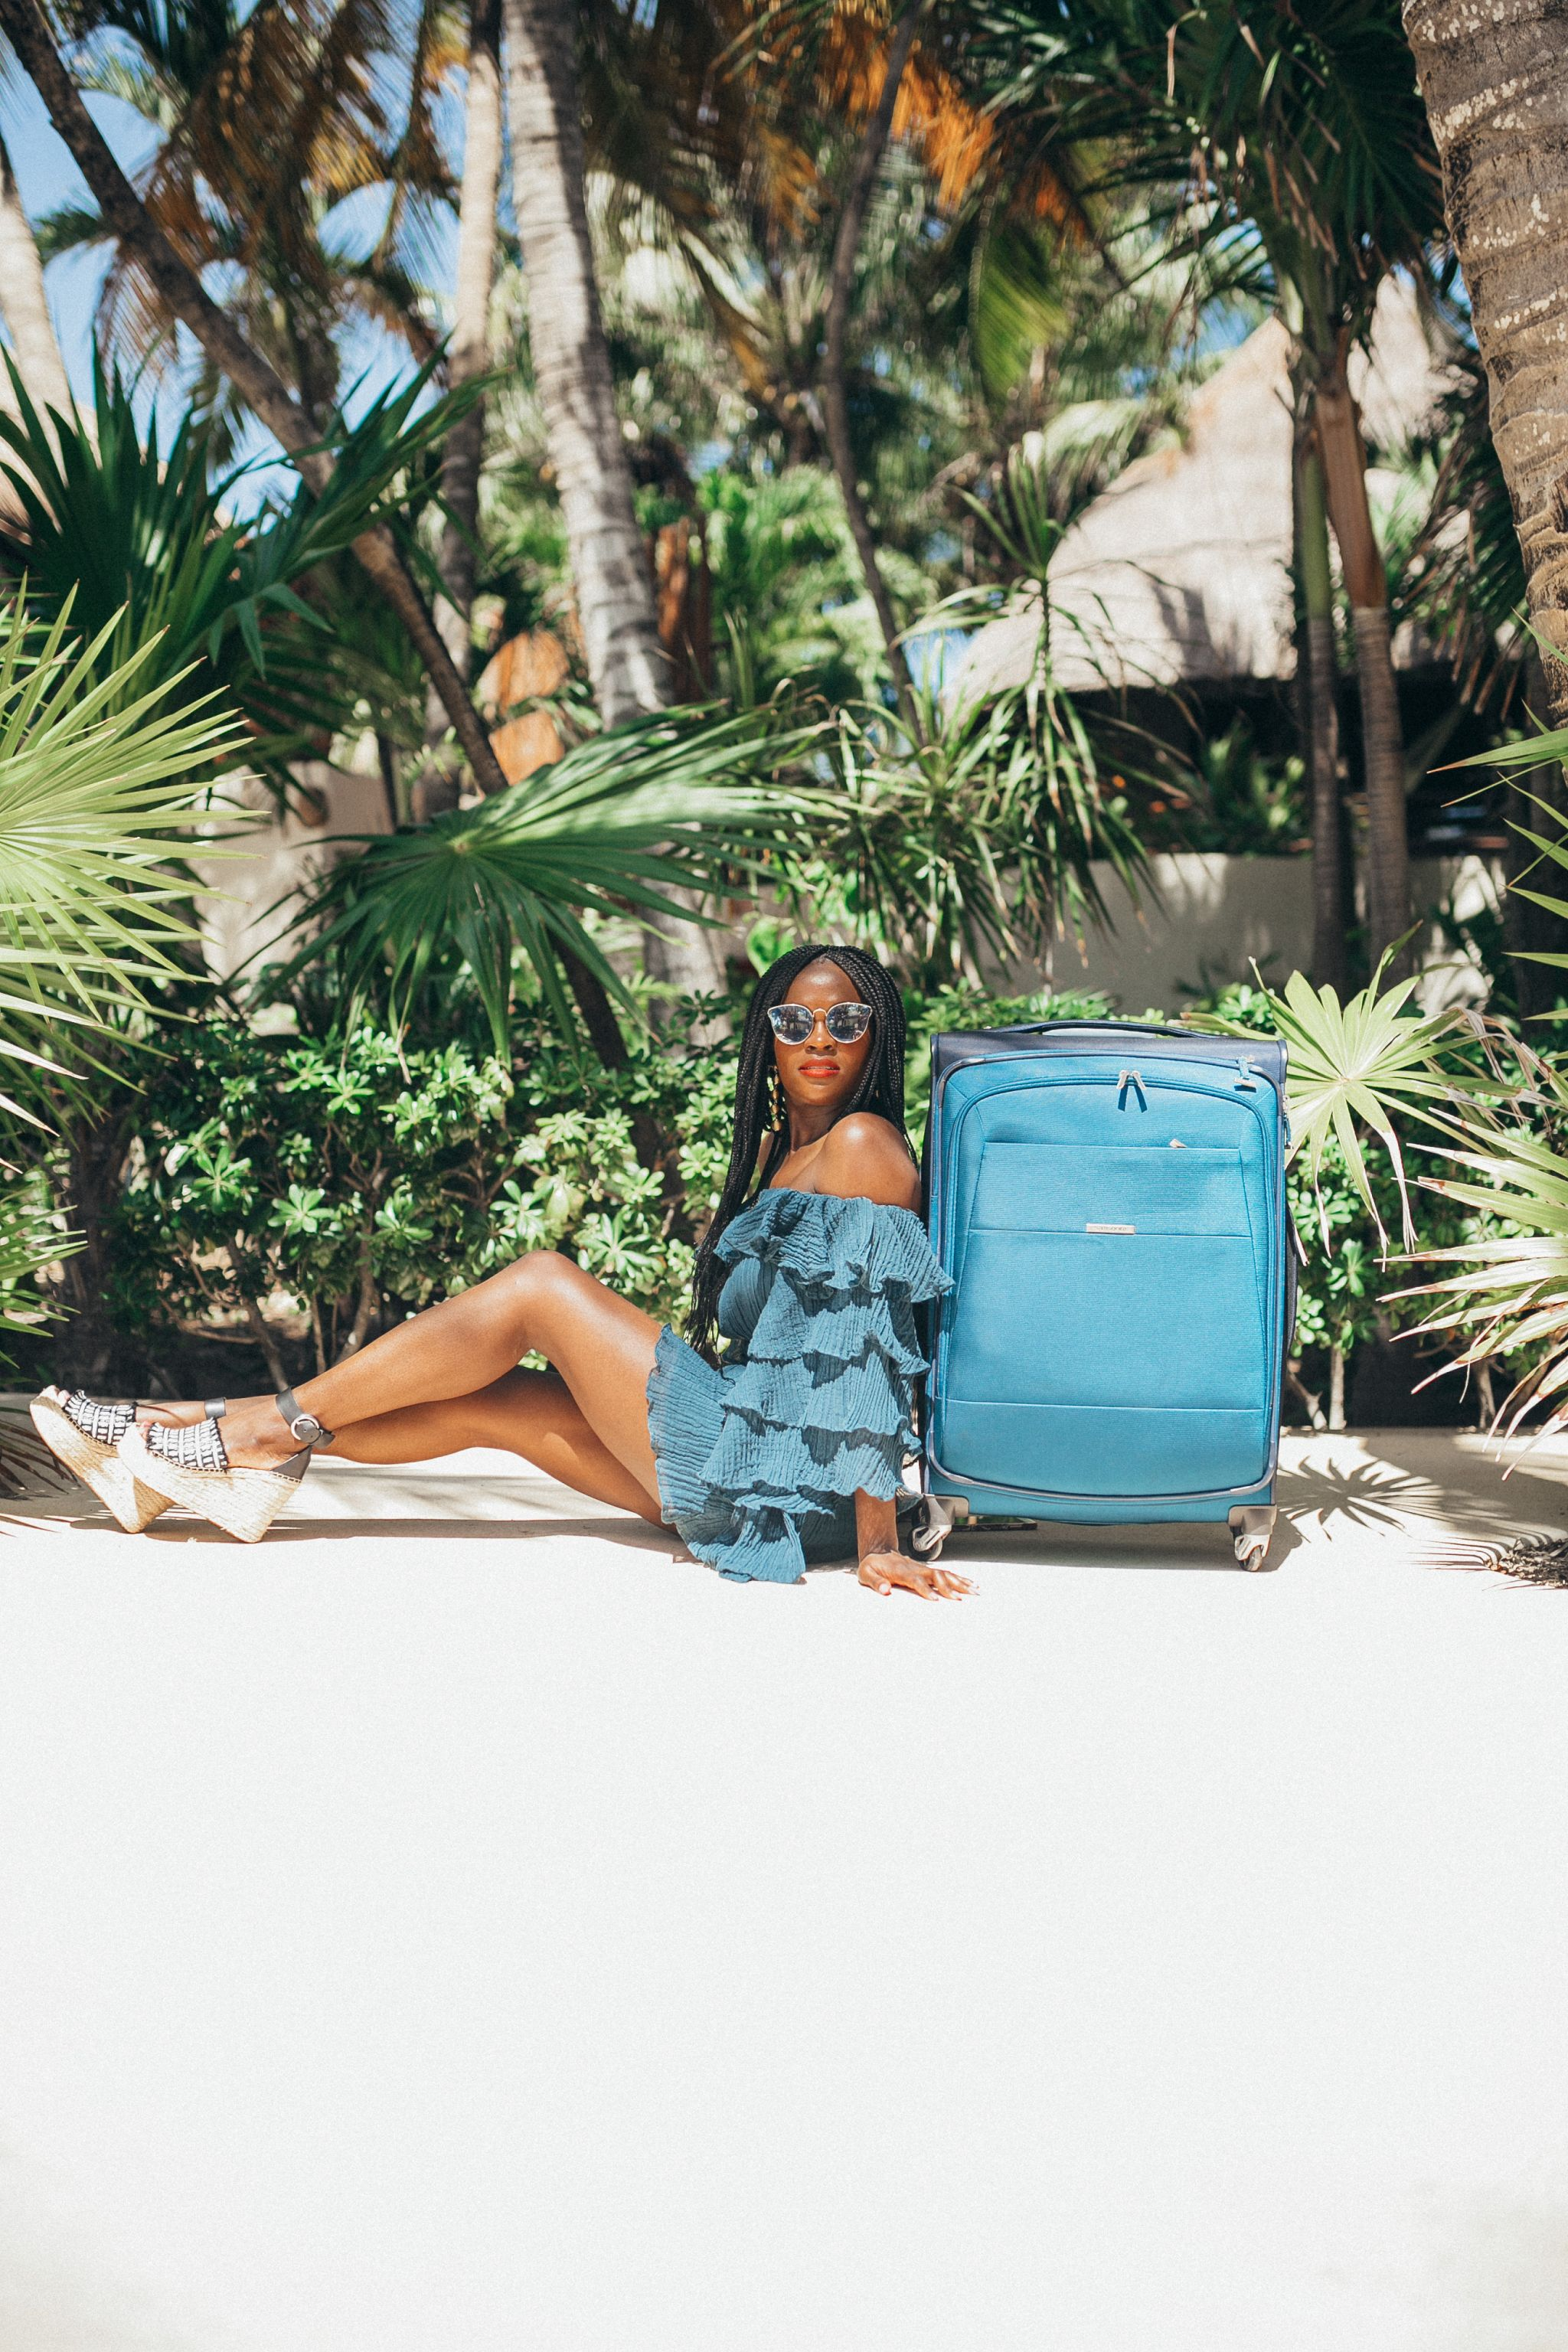 Samsonite ECO-Nu, Cranberry Tantrums in Mexico, Jennifer Ibe